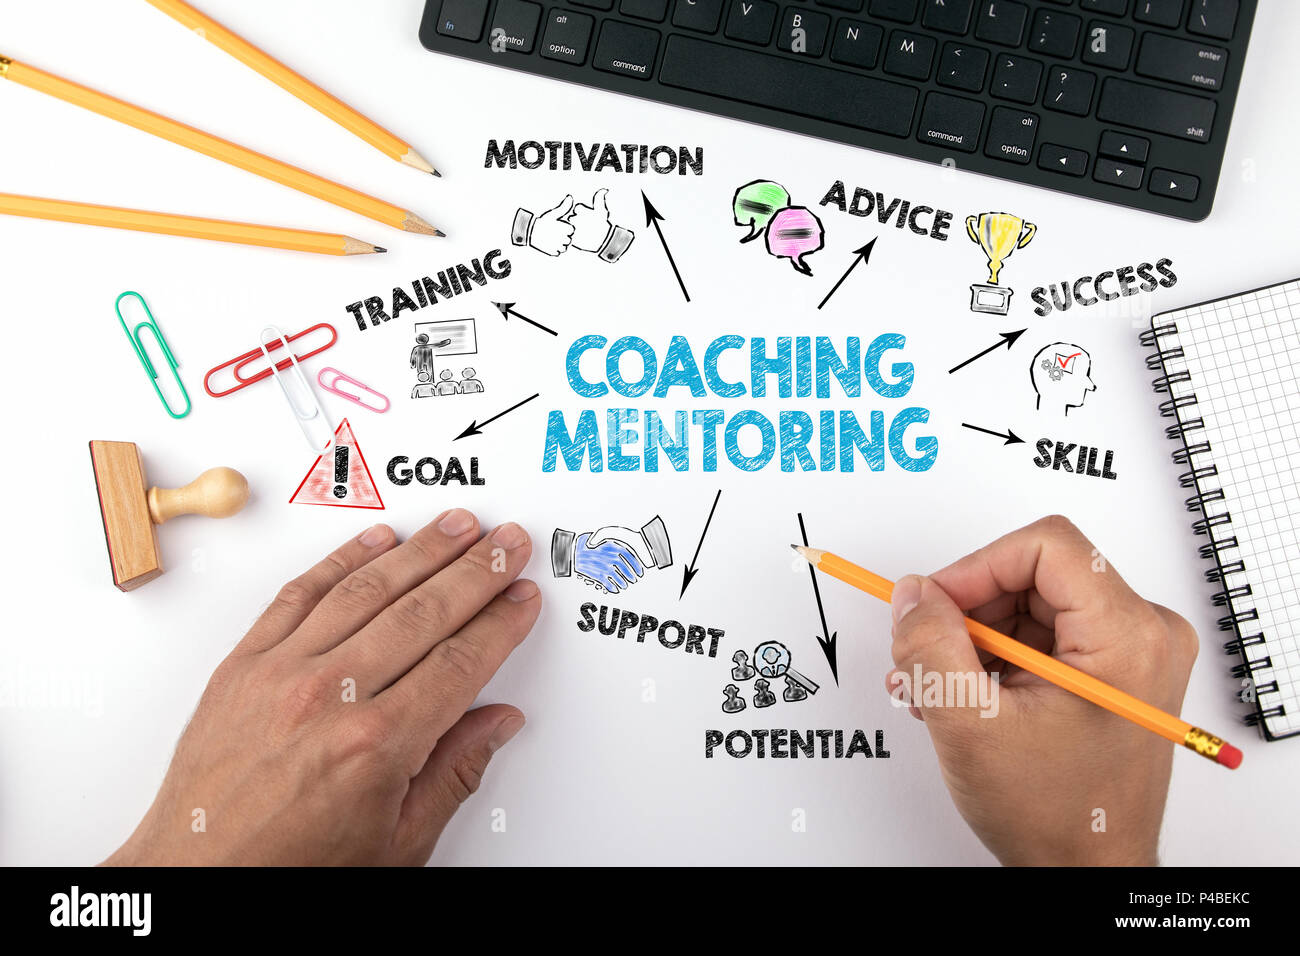 Coaching and Mentoring concept. Chart with keywords and icons - Stock Image